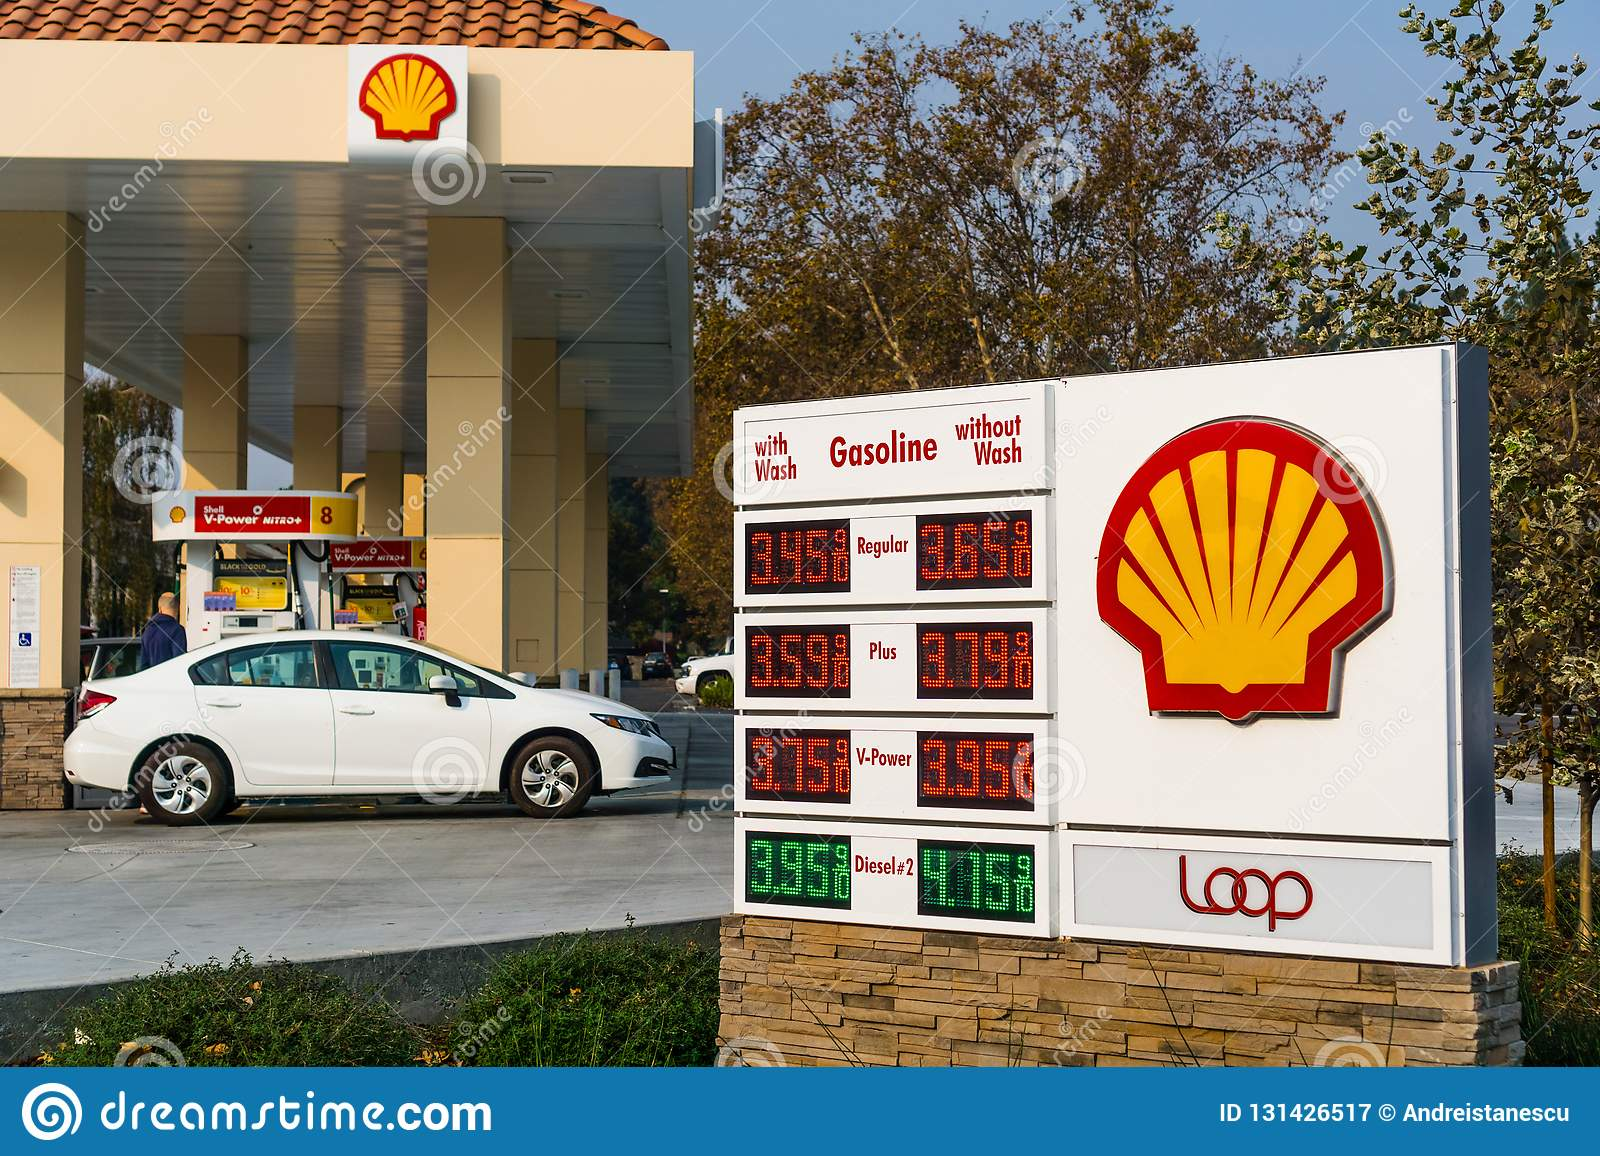 Shell gas station located in San Francisco bay area